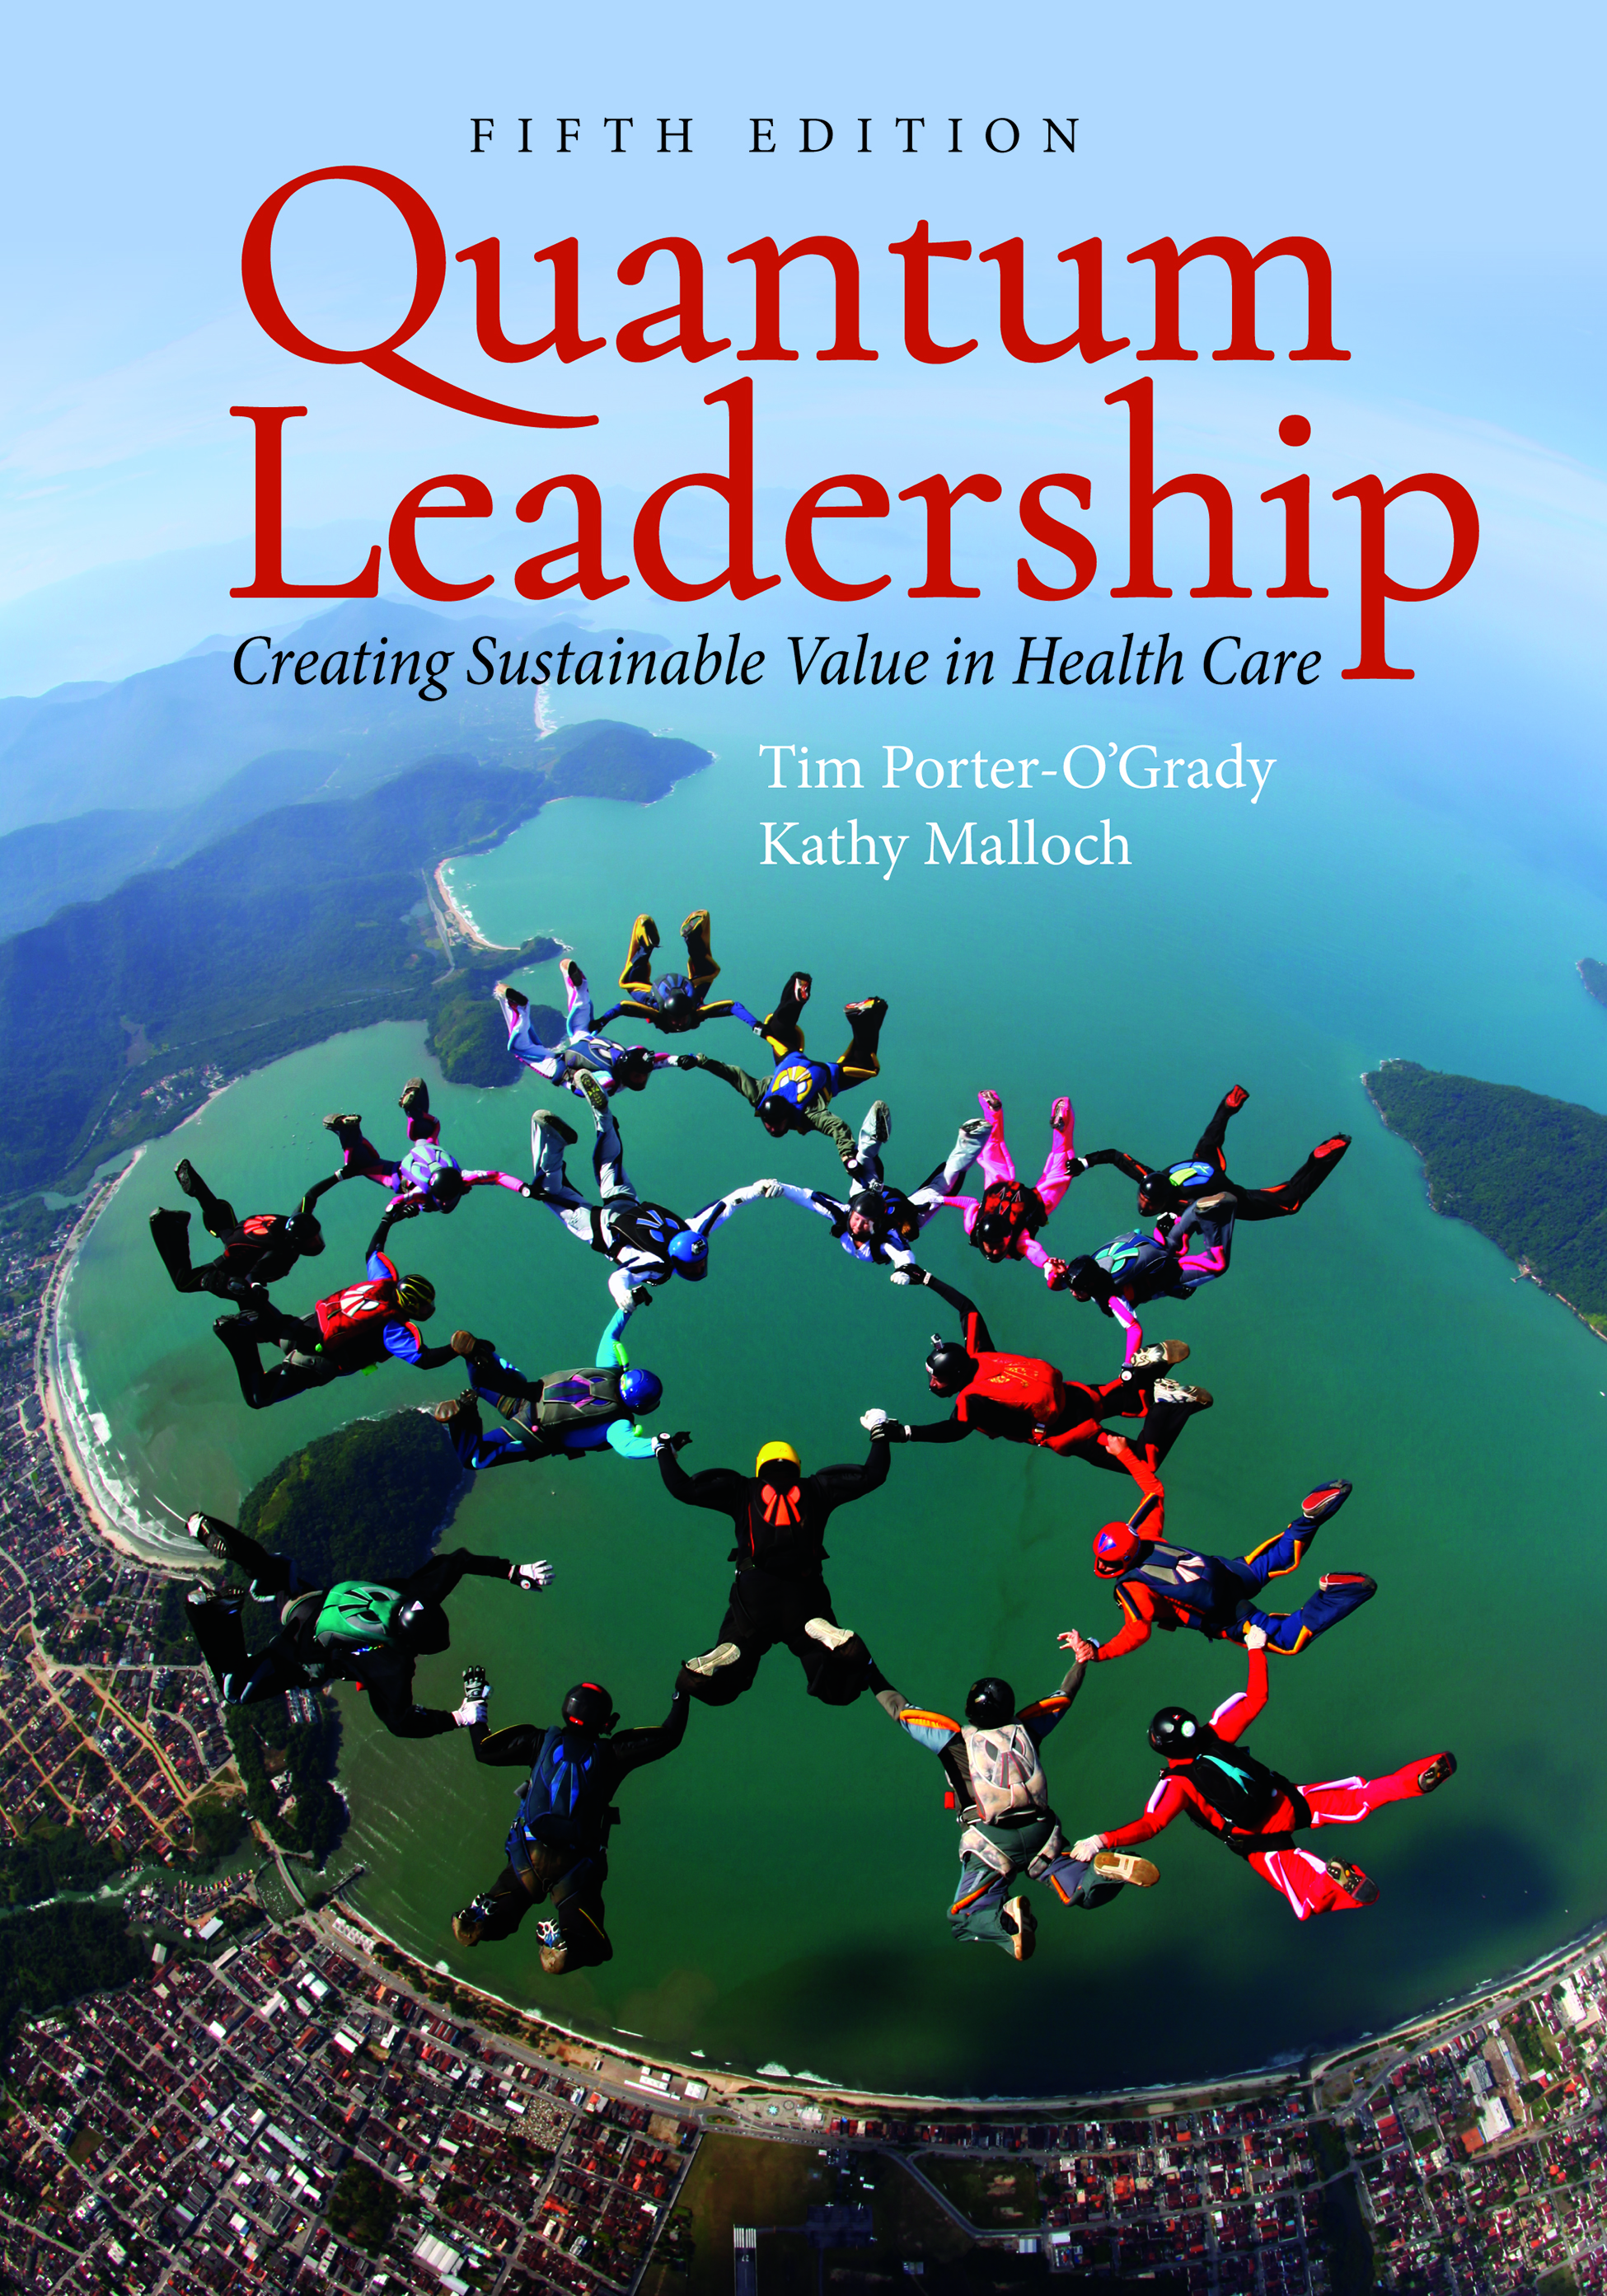 transformational leadership in healthcare How can we advance transformational leadership in healthcare healthforce center's director identifies what leadership means to her.